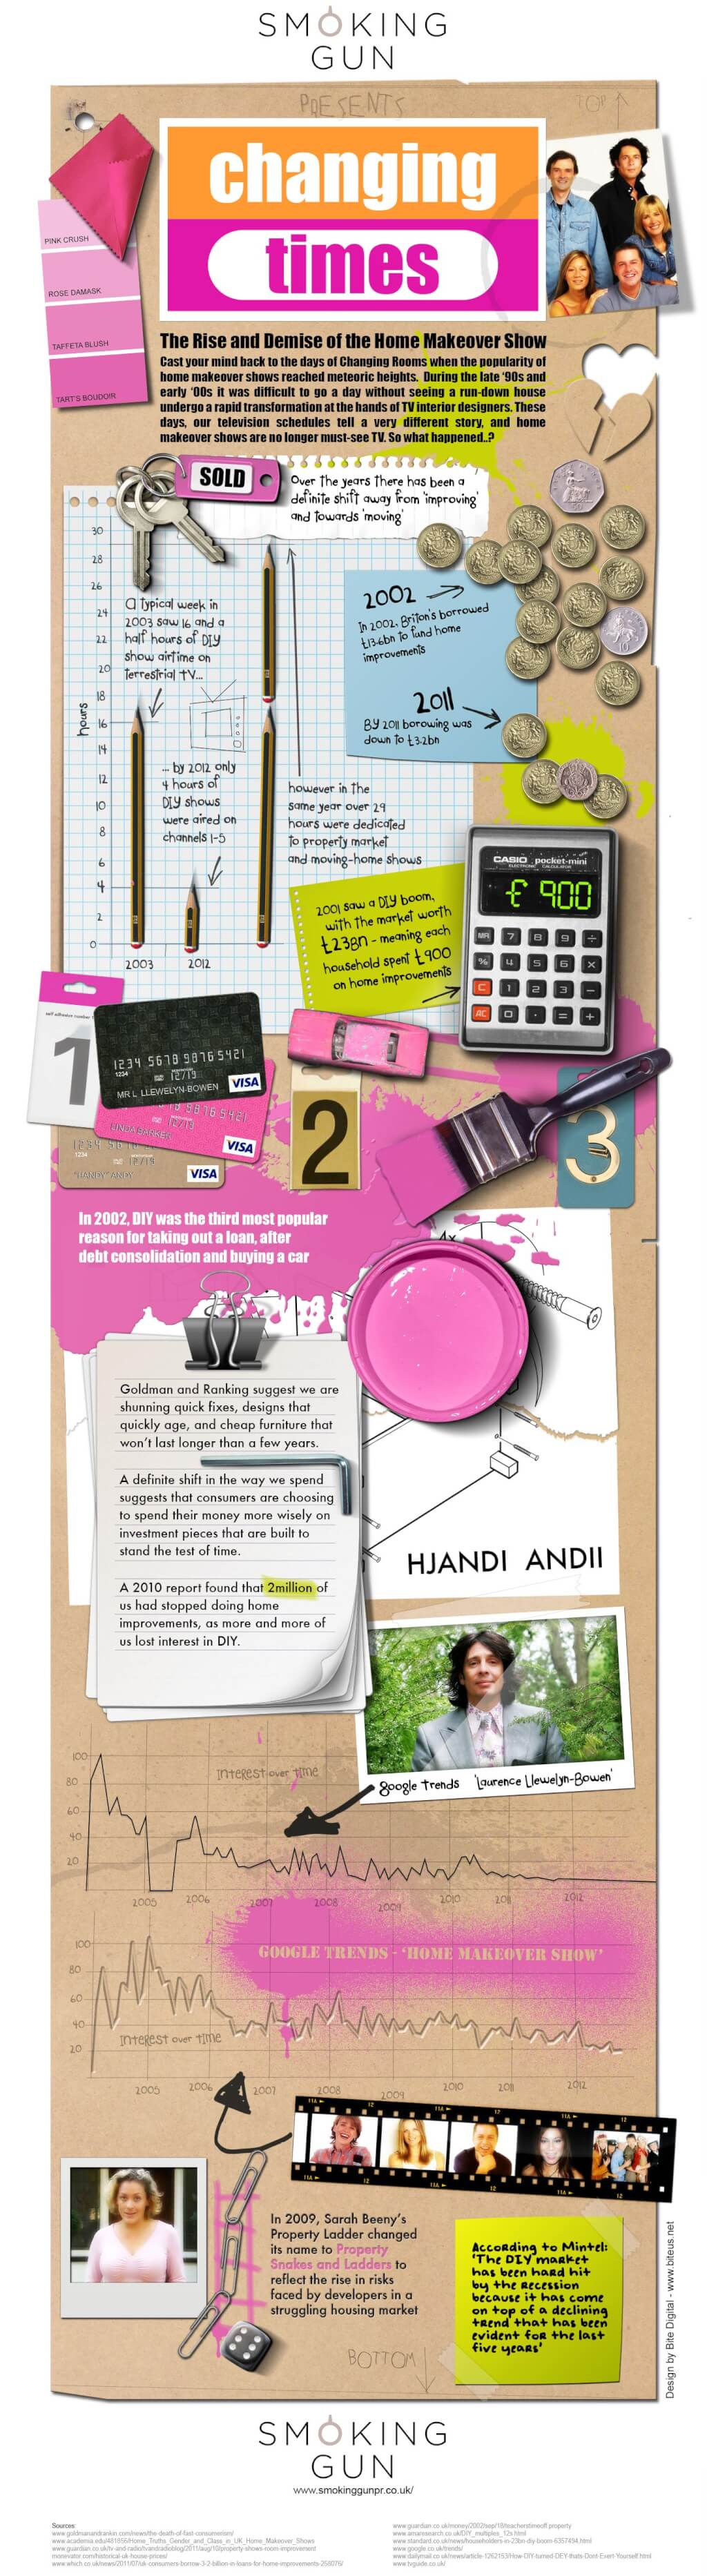 Homes PR agency reveals new infographic